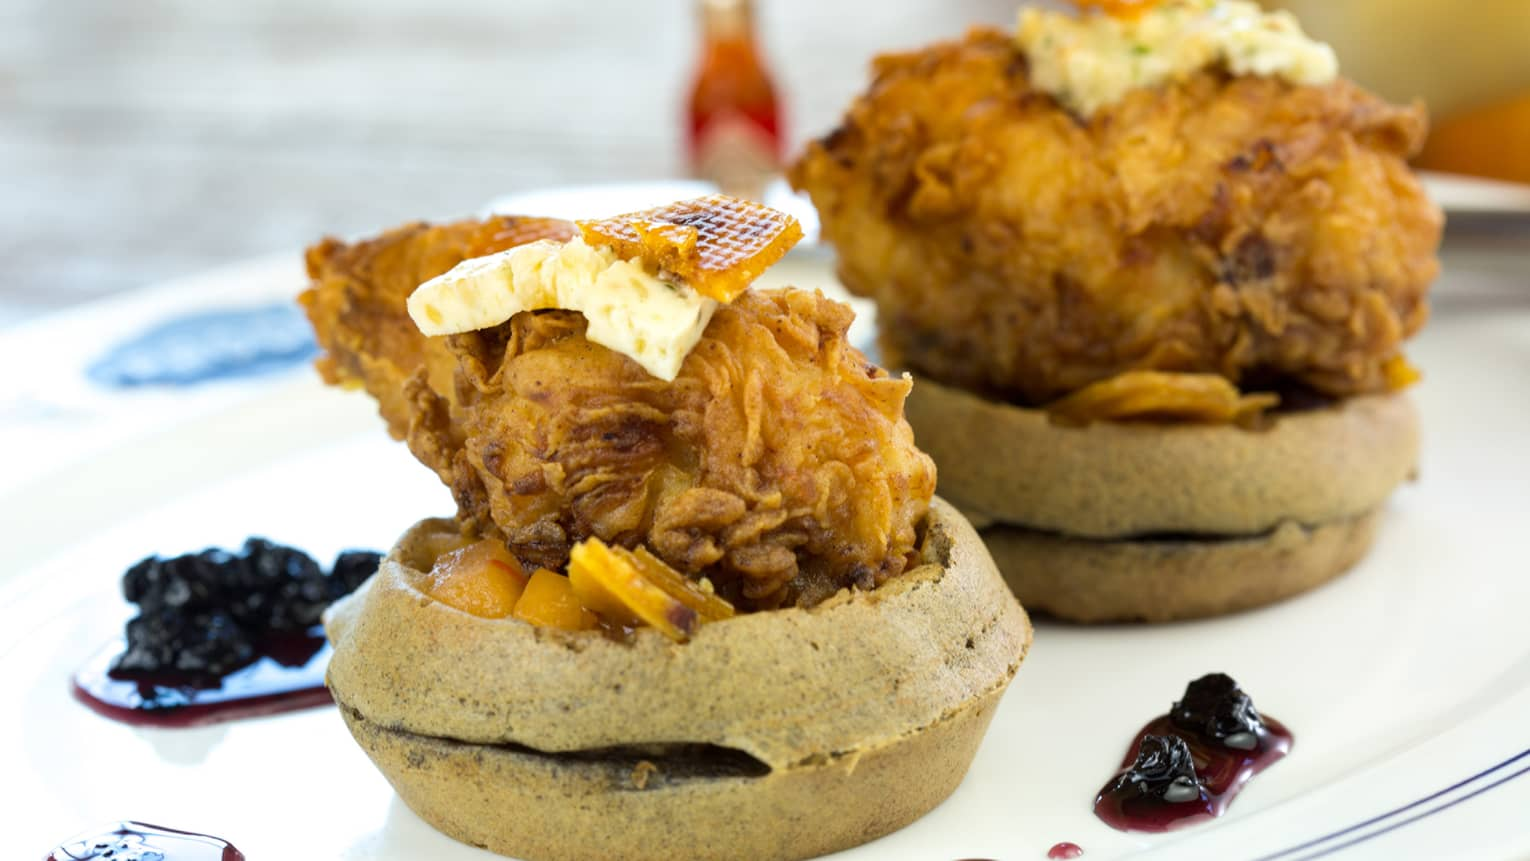 Two stacks of round waffles topped with fried chicken, butter, honey comb